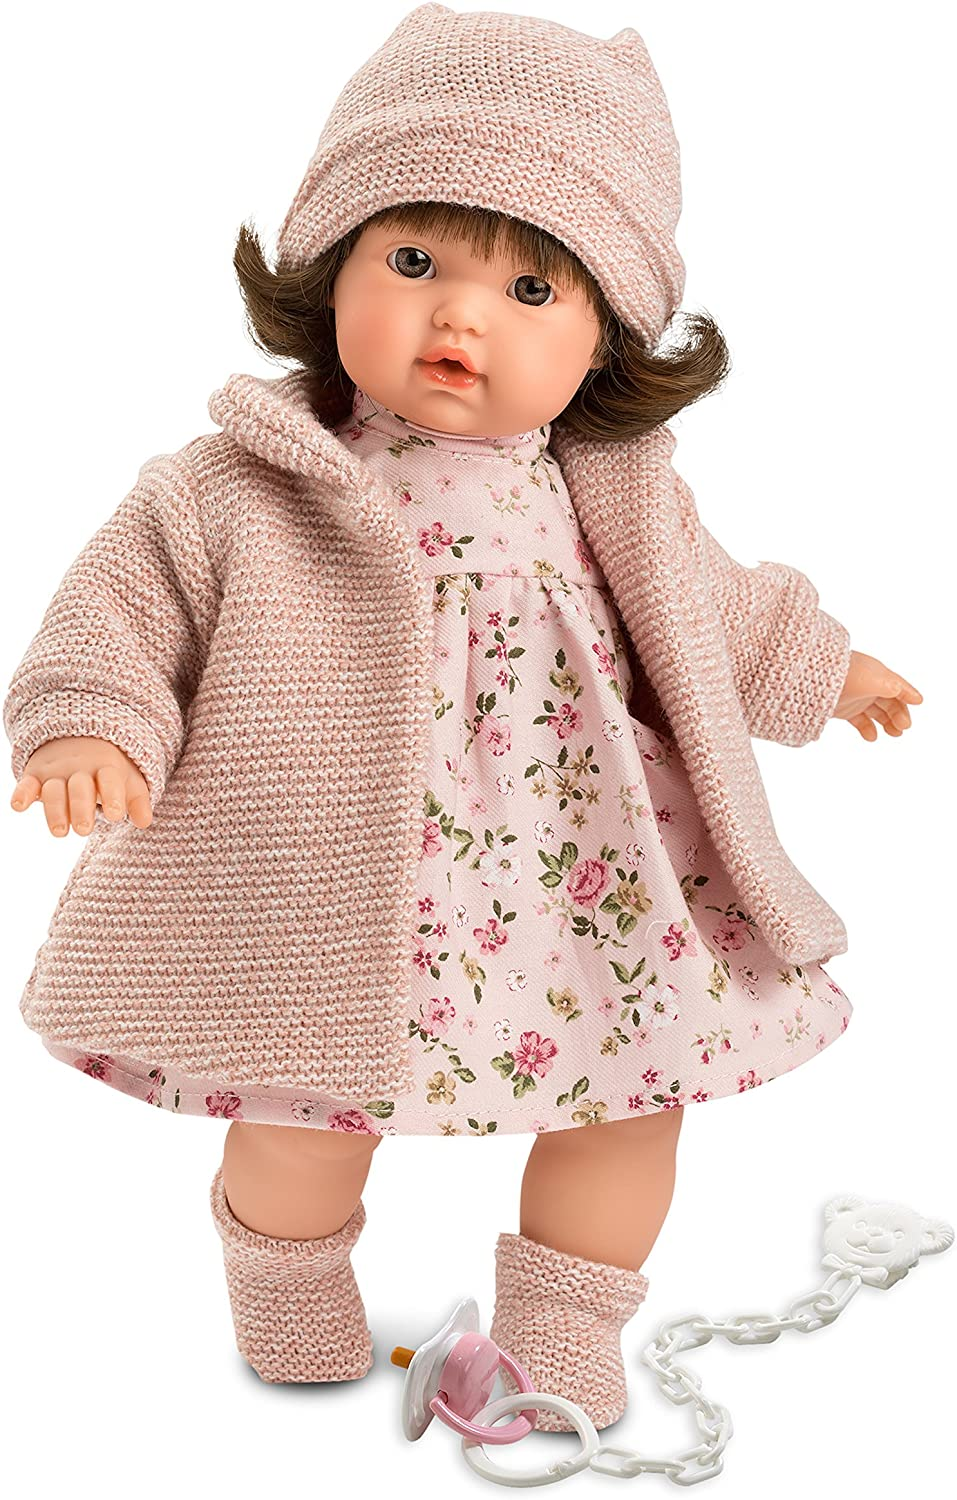 "Victoria 13"" Crying Soft Body Baby Doll"